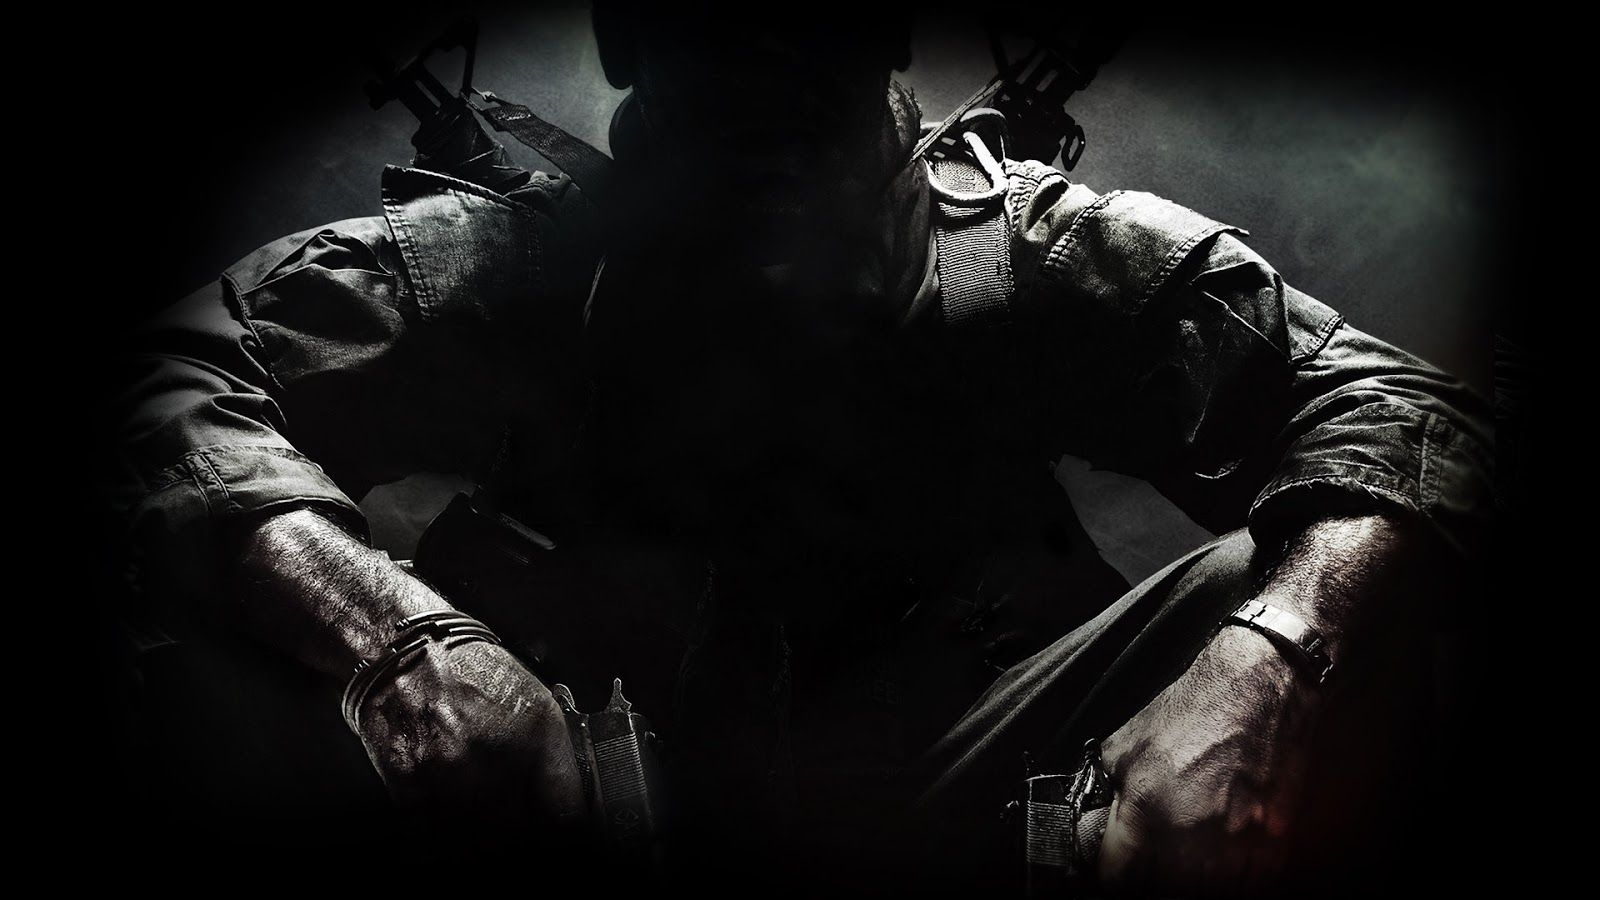 Call of duty black ops ii hd wallpapers backgrounds fondos call of duty black ops ii hd wallpapers backgrounds voltagebd Image collections